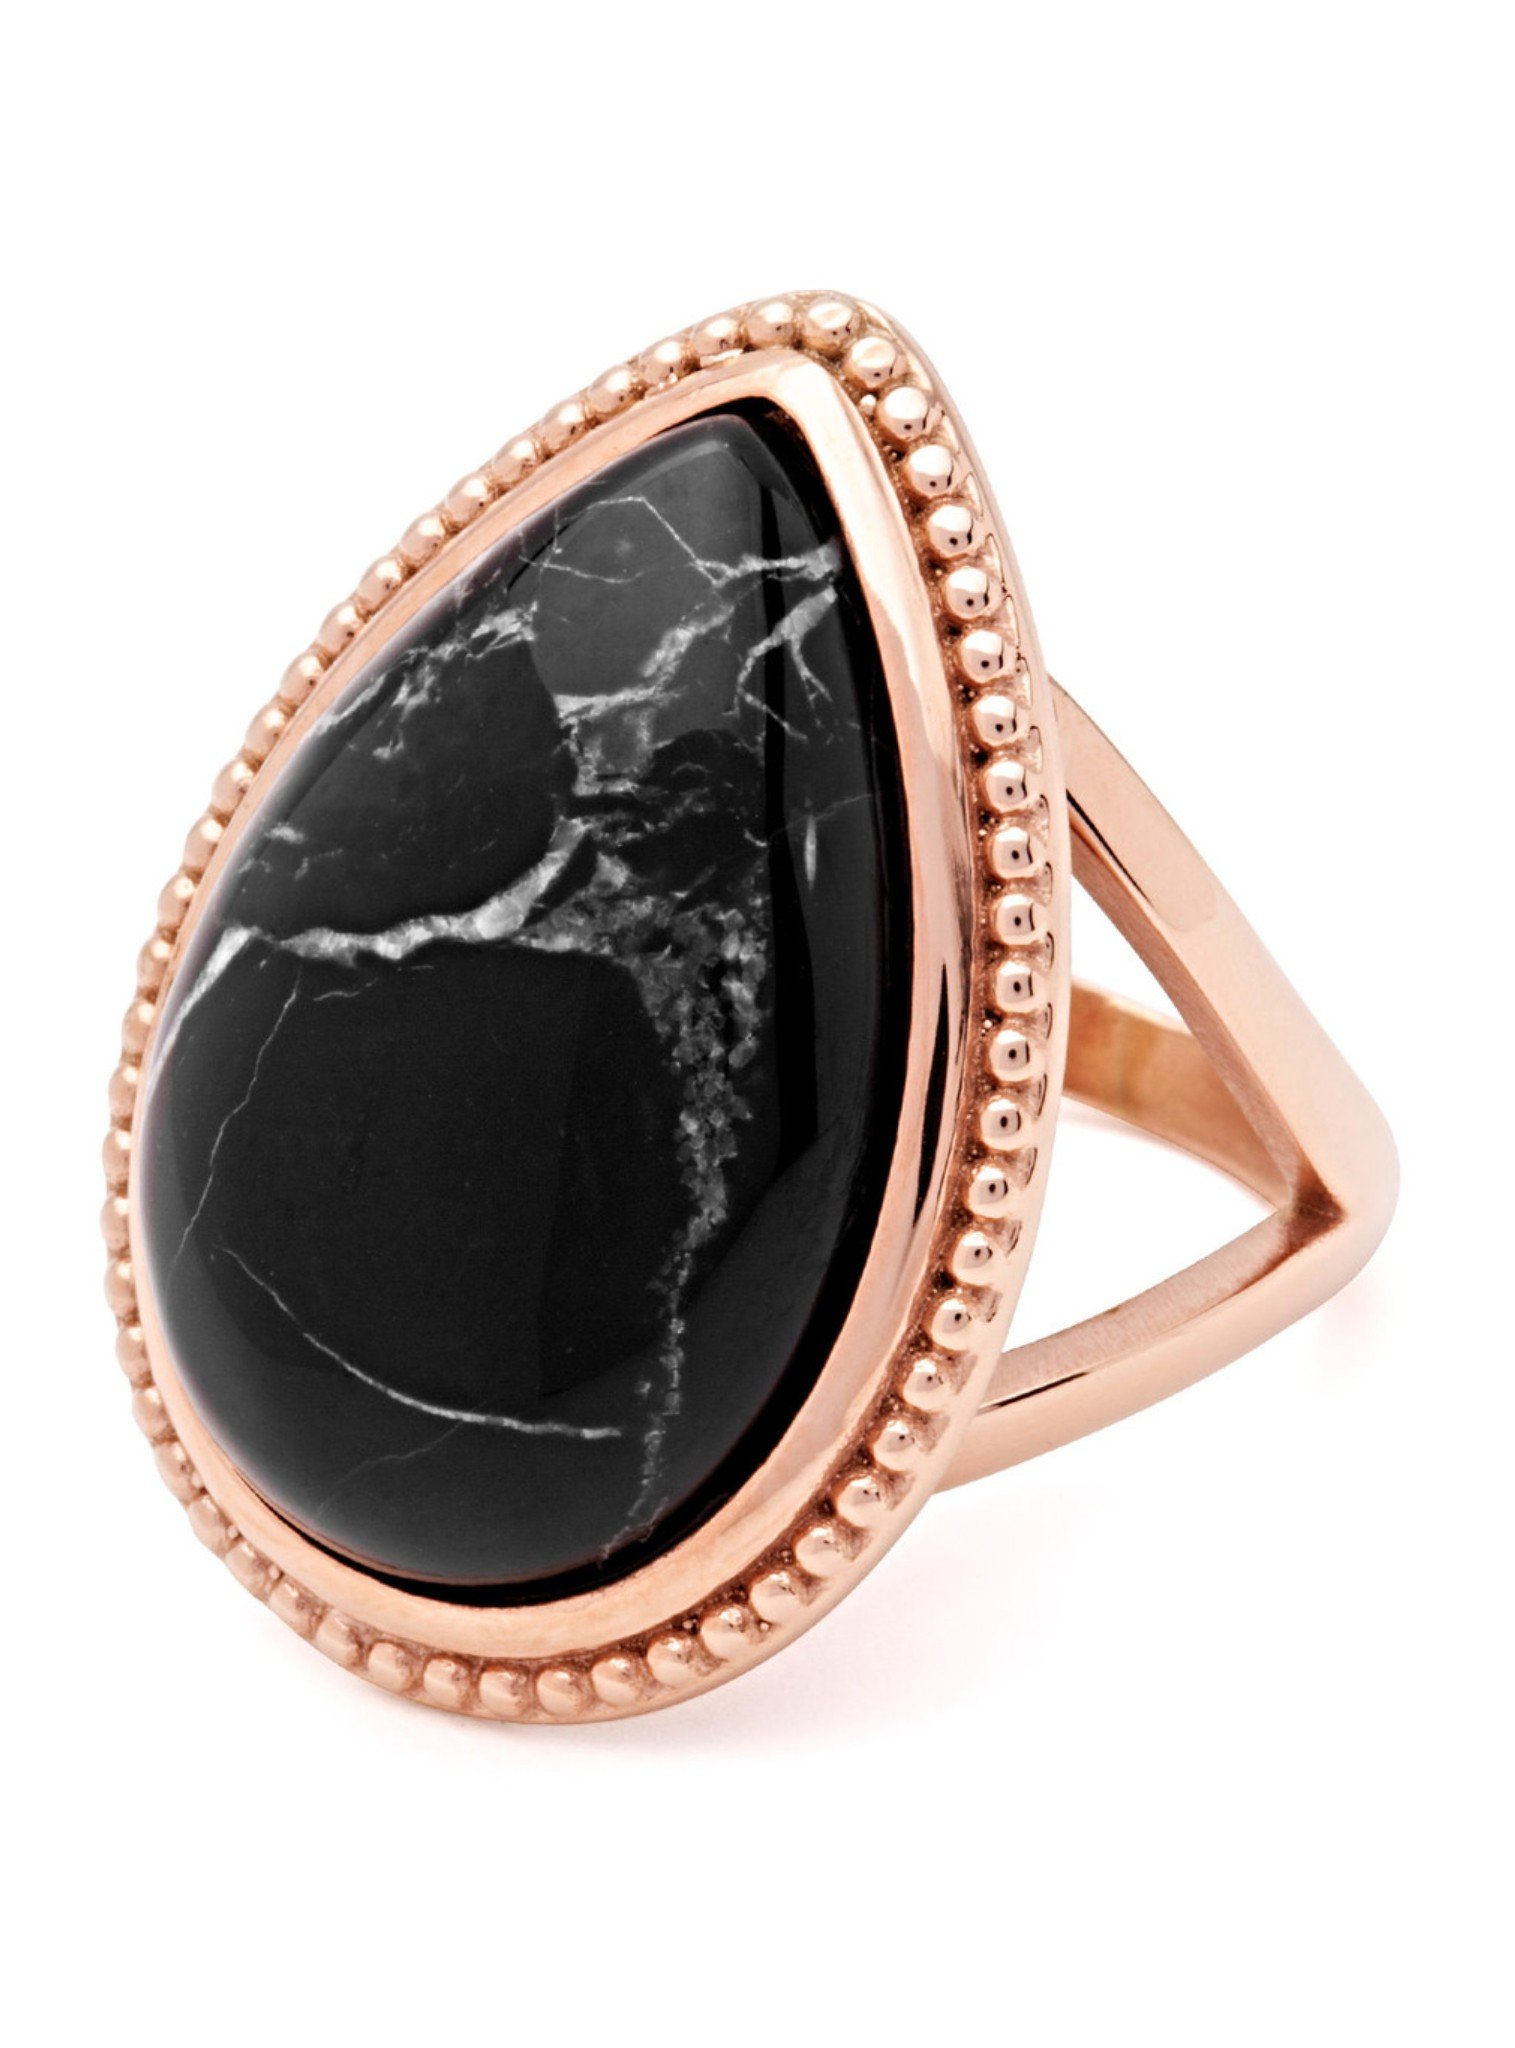 Twilight Rose Gold Stainless Steel Ring with Howlite